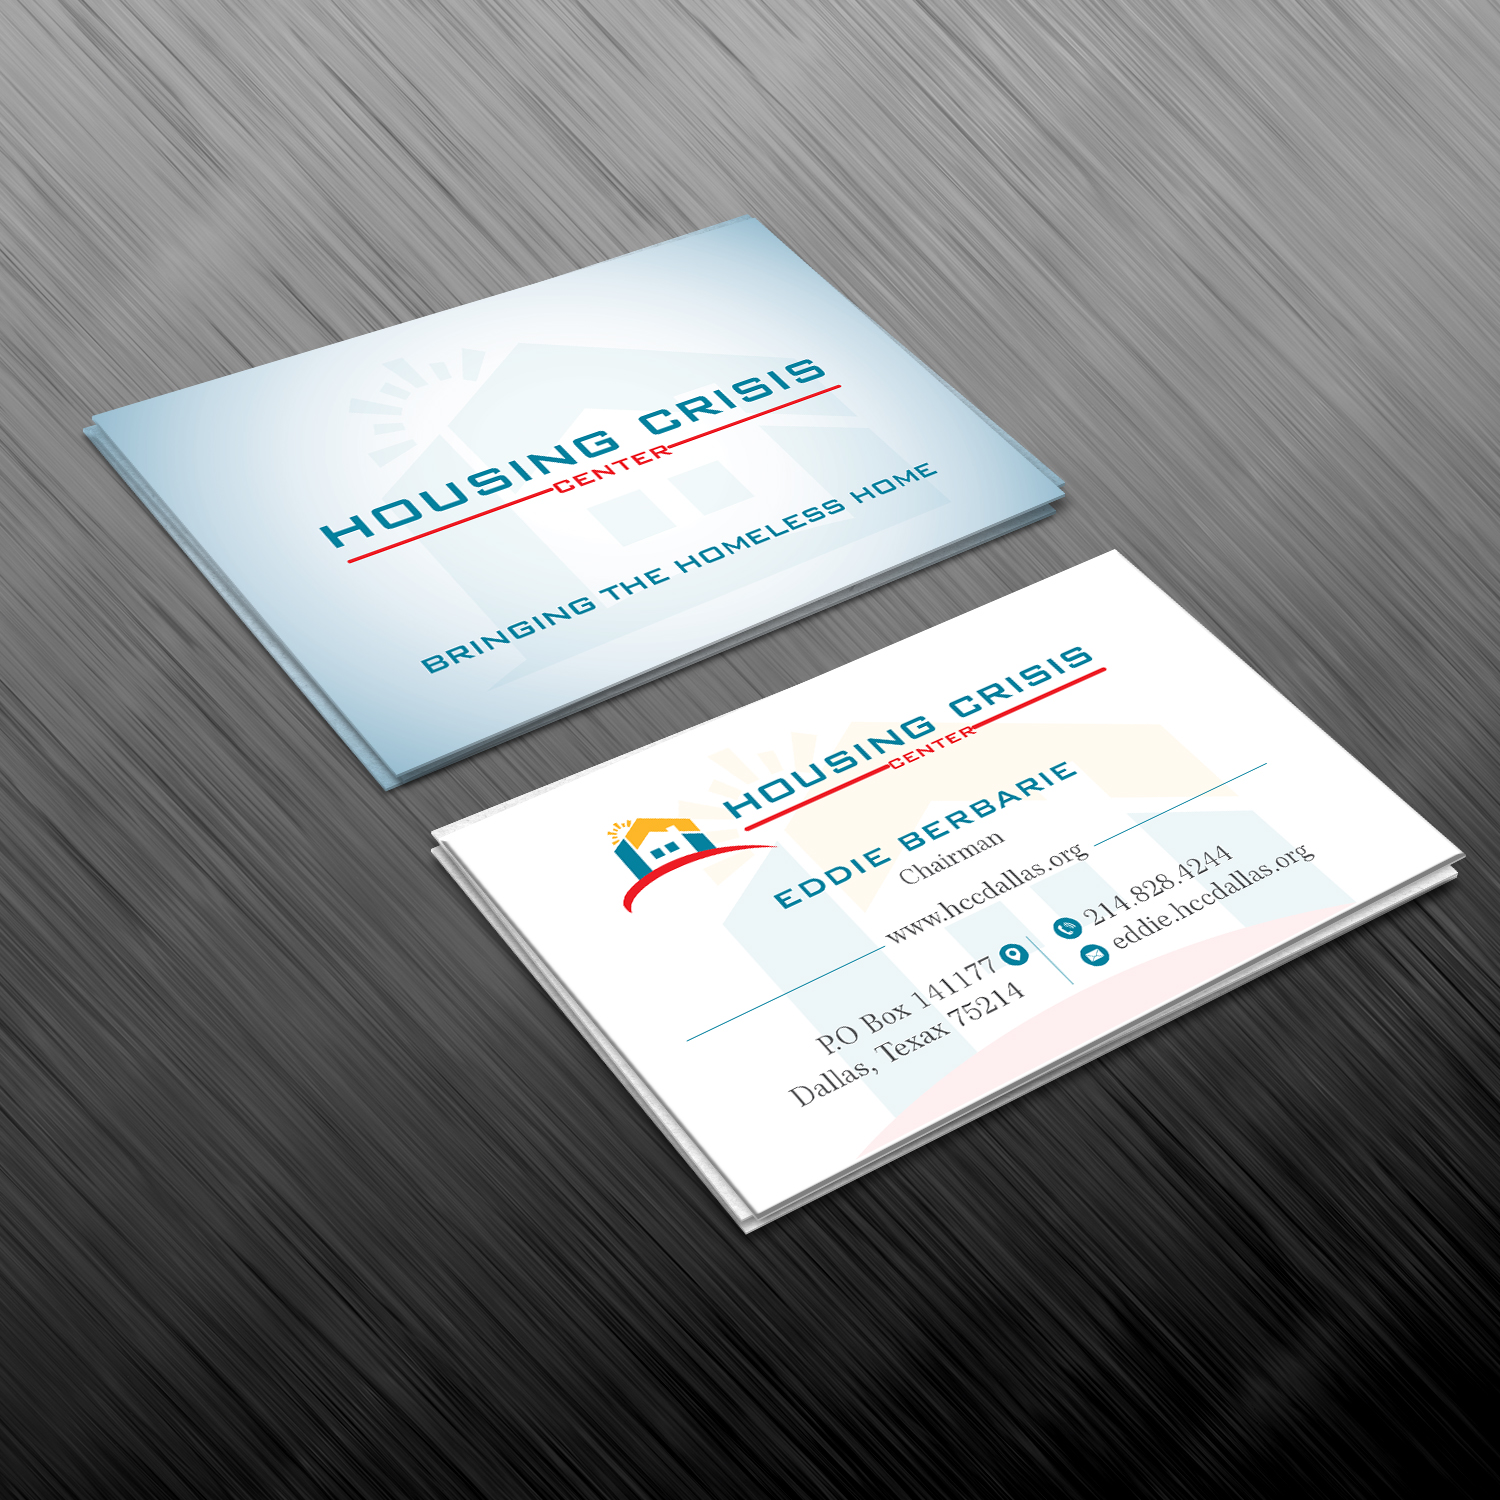 Colorful serious non profit business card design for housing business card design by creative jiniya for housing crisis center design 17976321 colourmoves